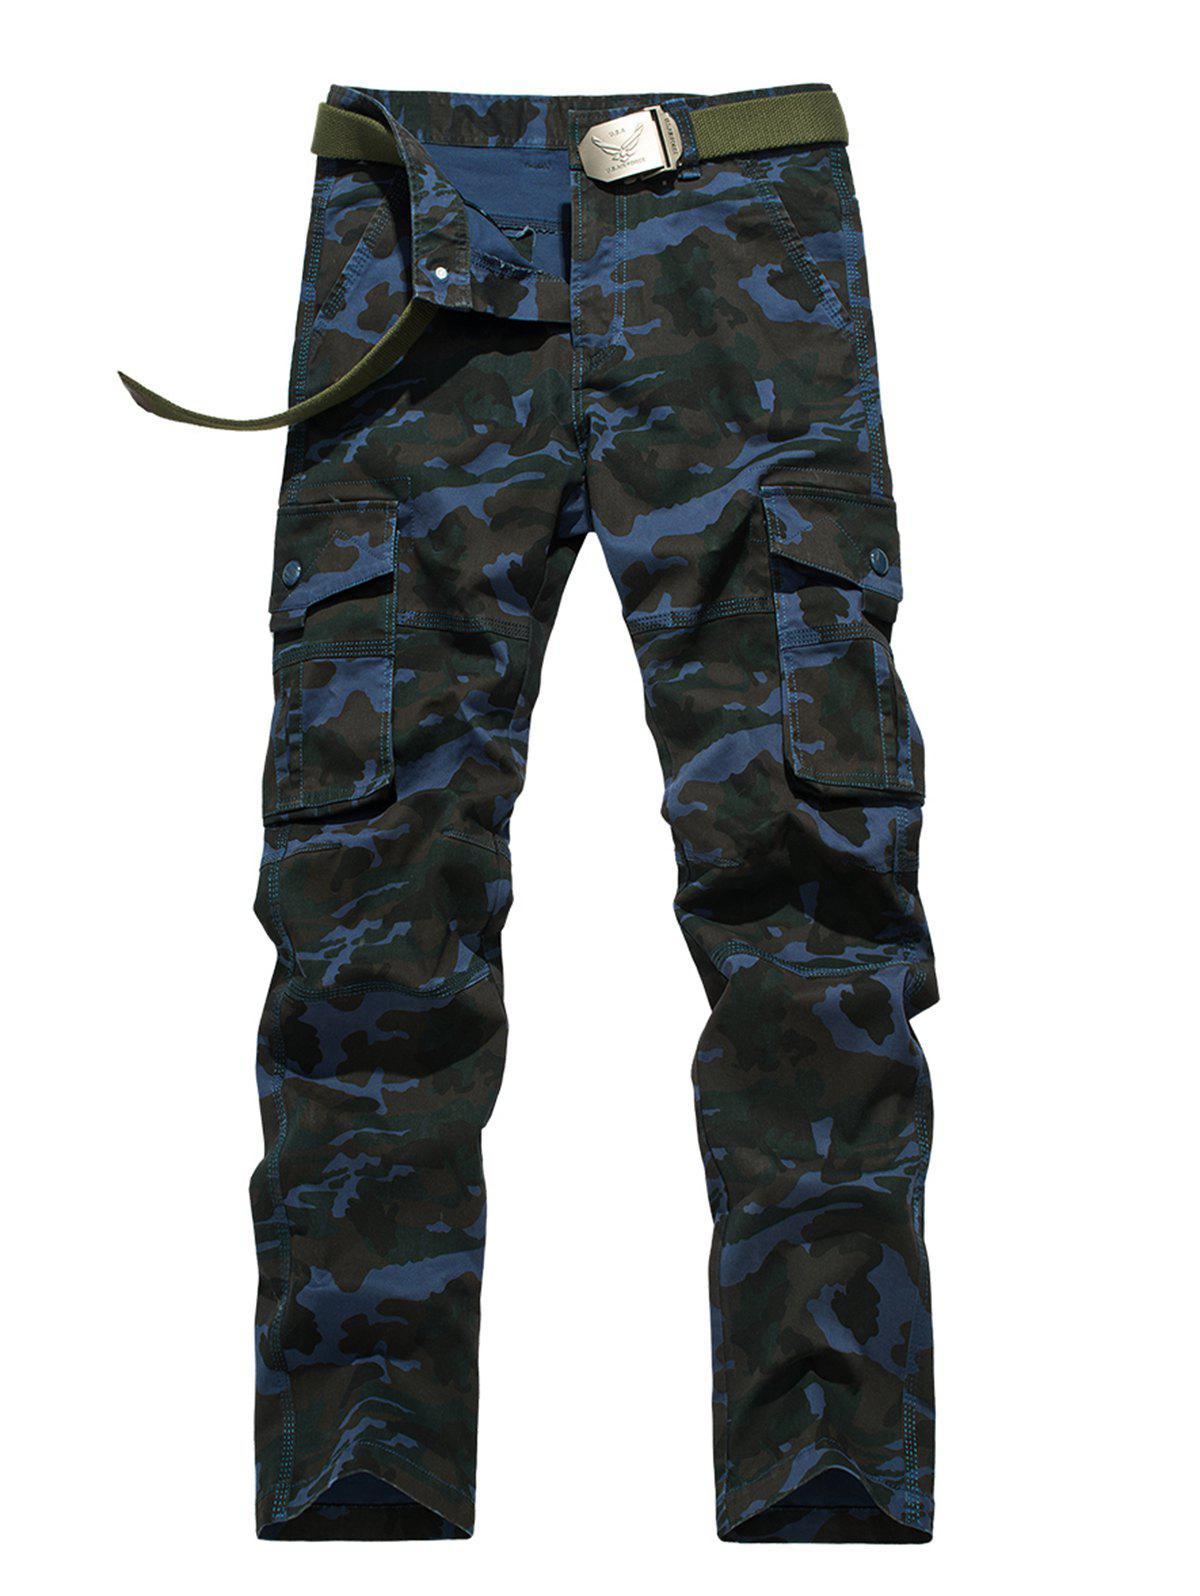 Latest Plus Size Zipper Fly Straight Leg Pockets Embellished Camouflage Cargo Pants